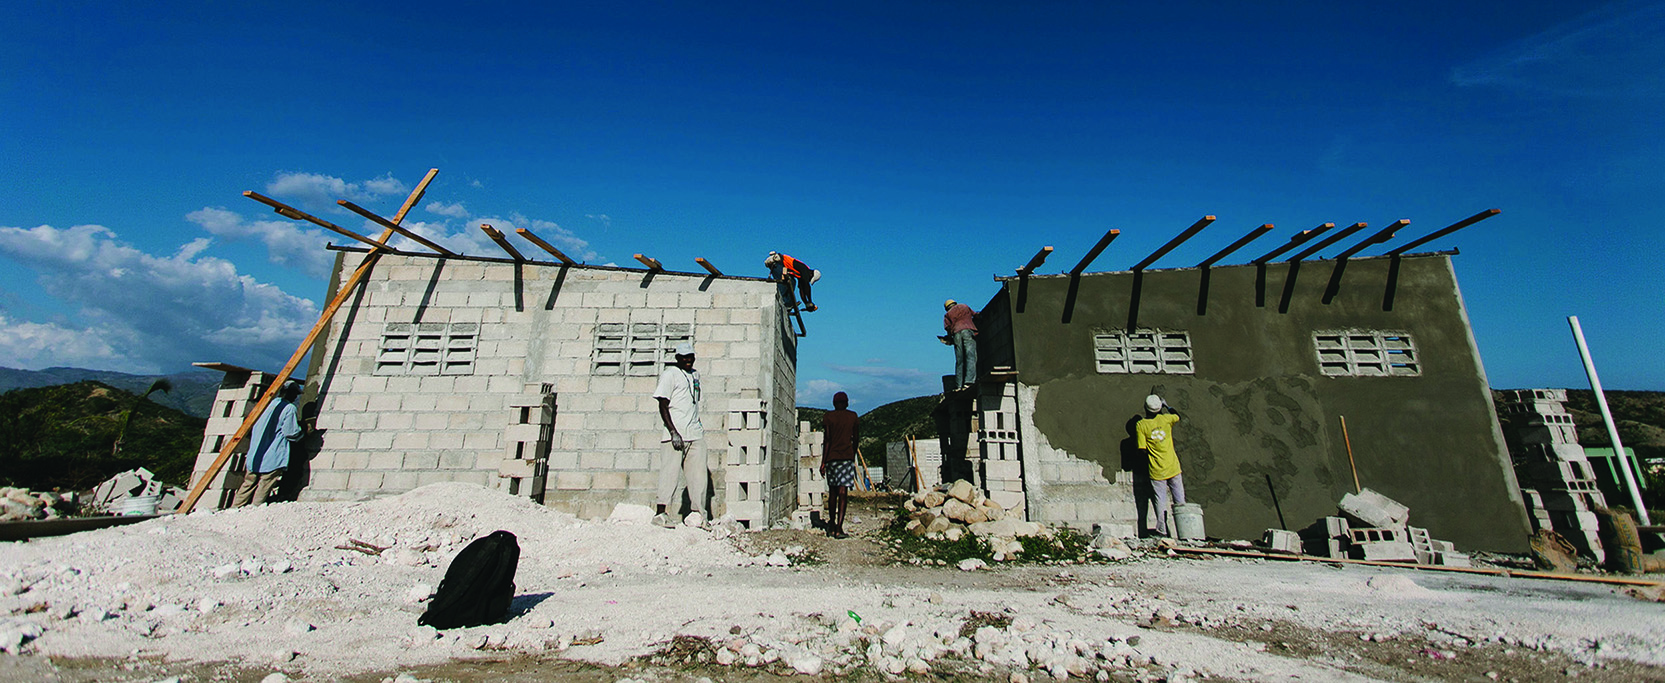 A photograph shows people building houses in Haiti.